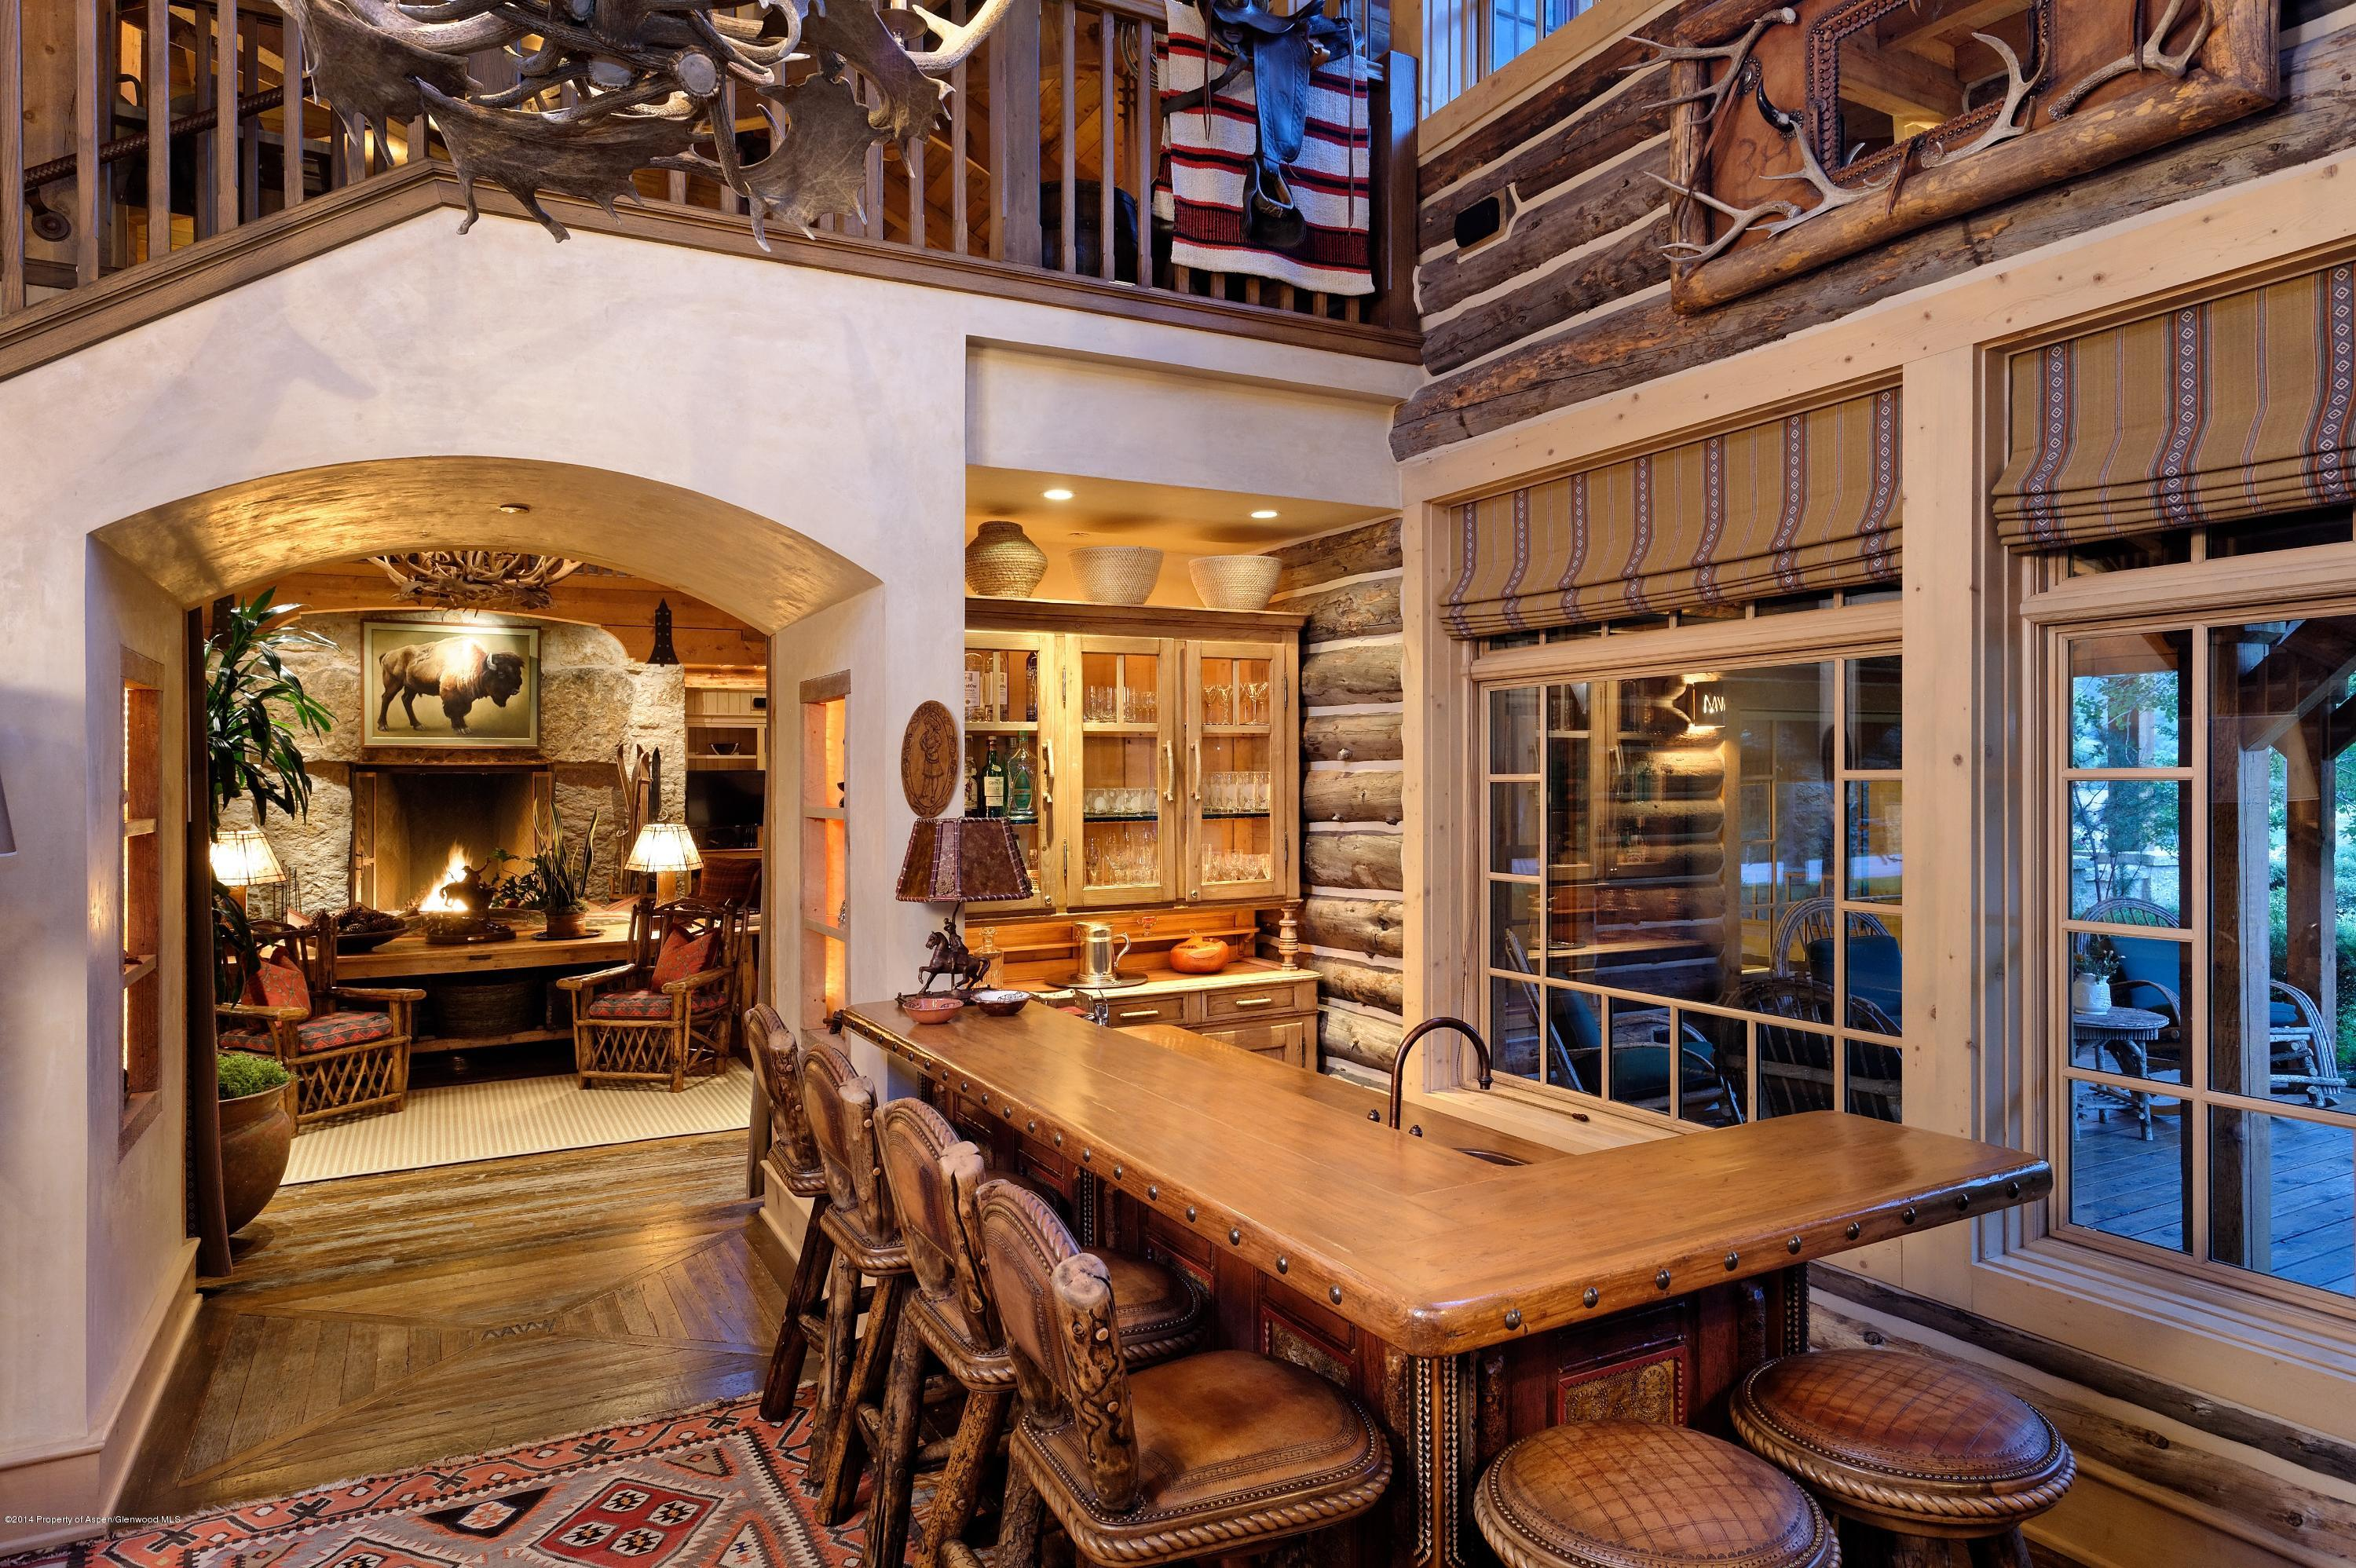 MLS# 135595 - 21 - 50 E River Ranch Road, Snowmass, CO 81654